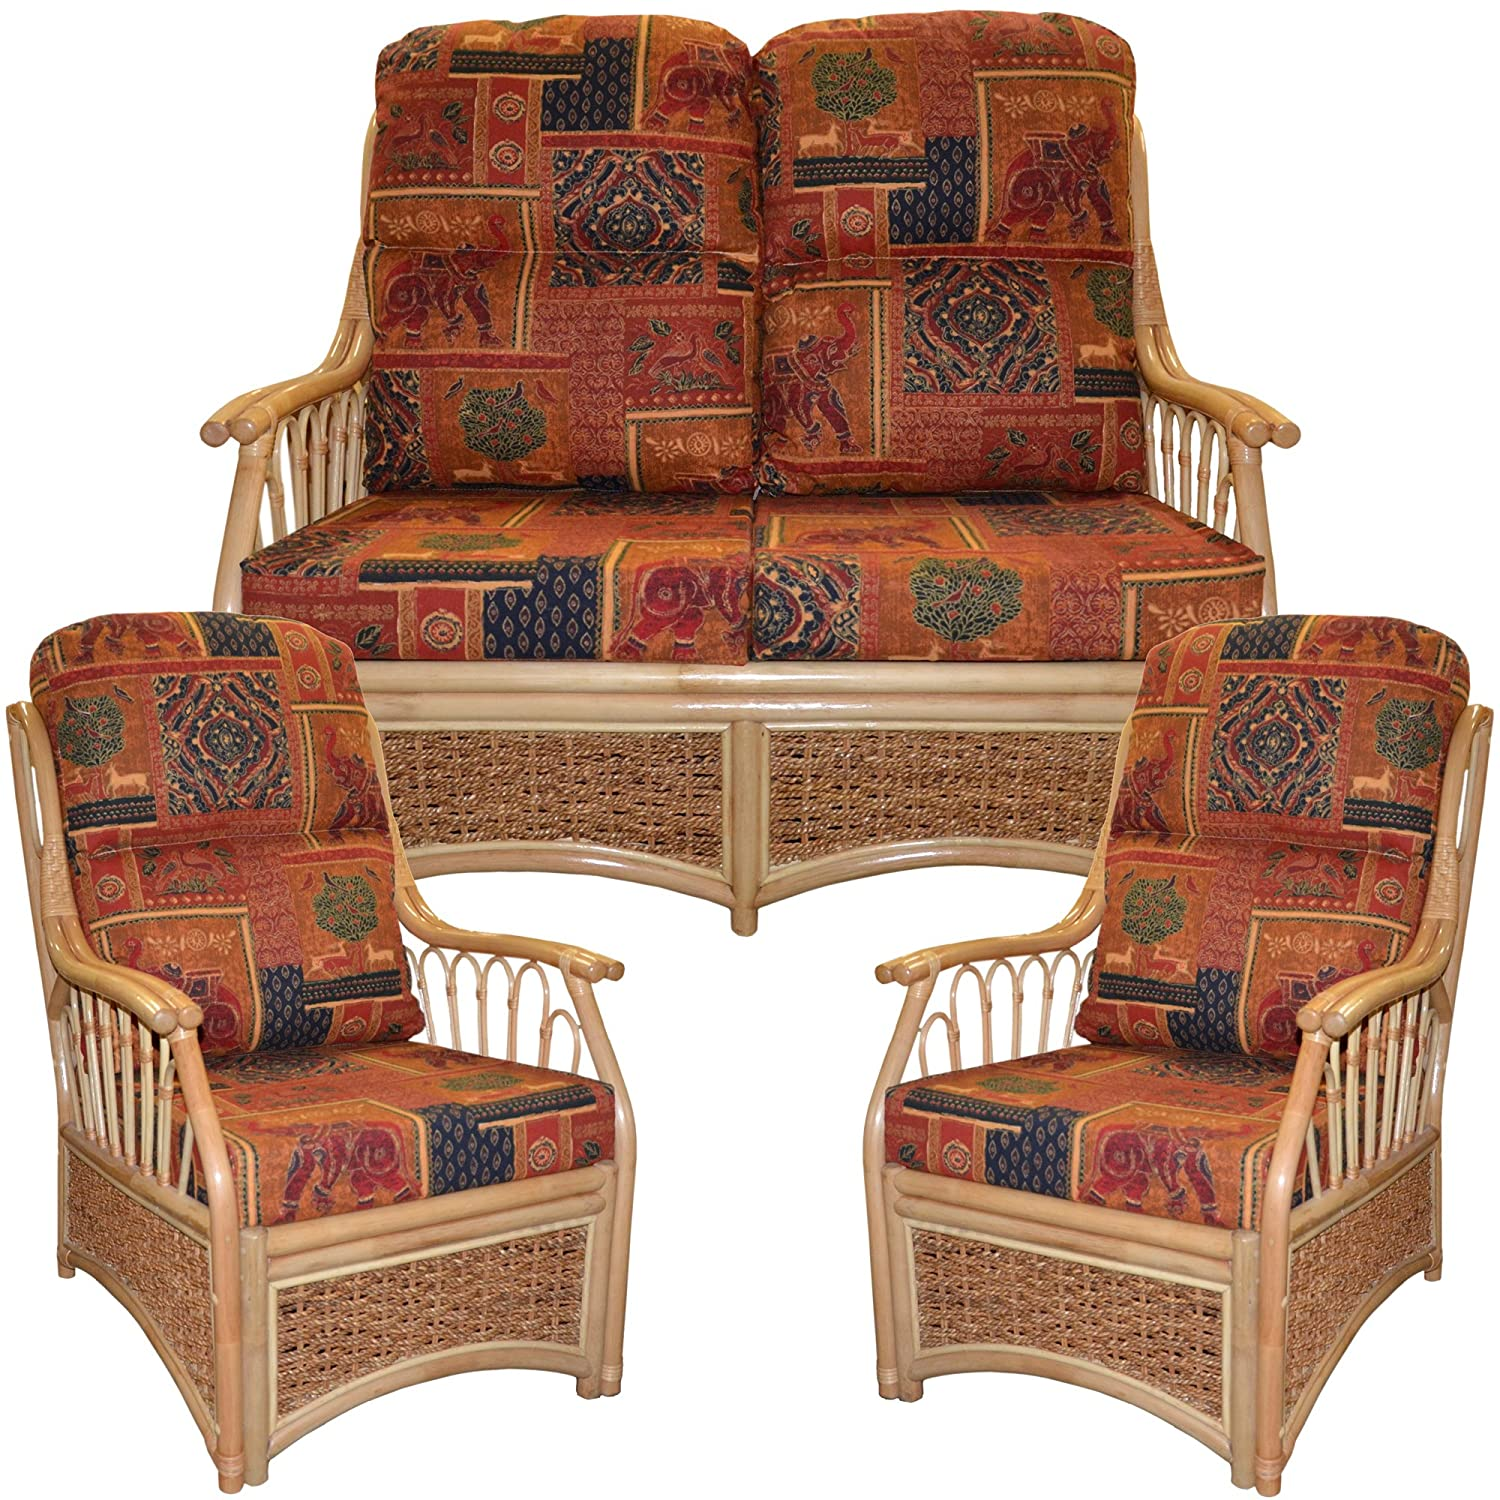 Cane chairs with cushions - Replacement Cane Suite Complete Cushions Only Conservatory Furniture Wicker Rattan